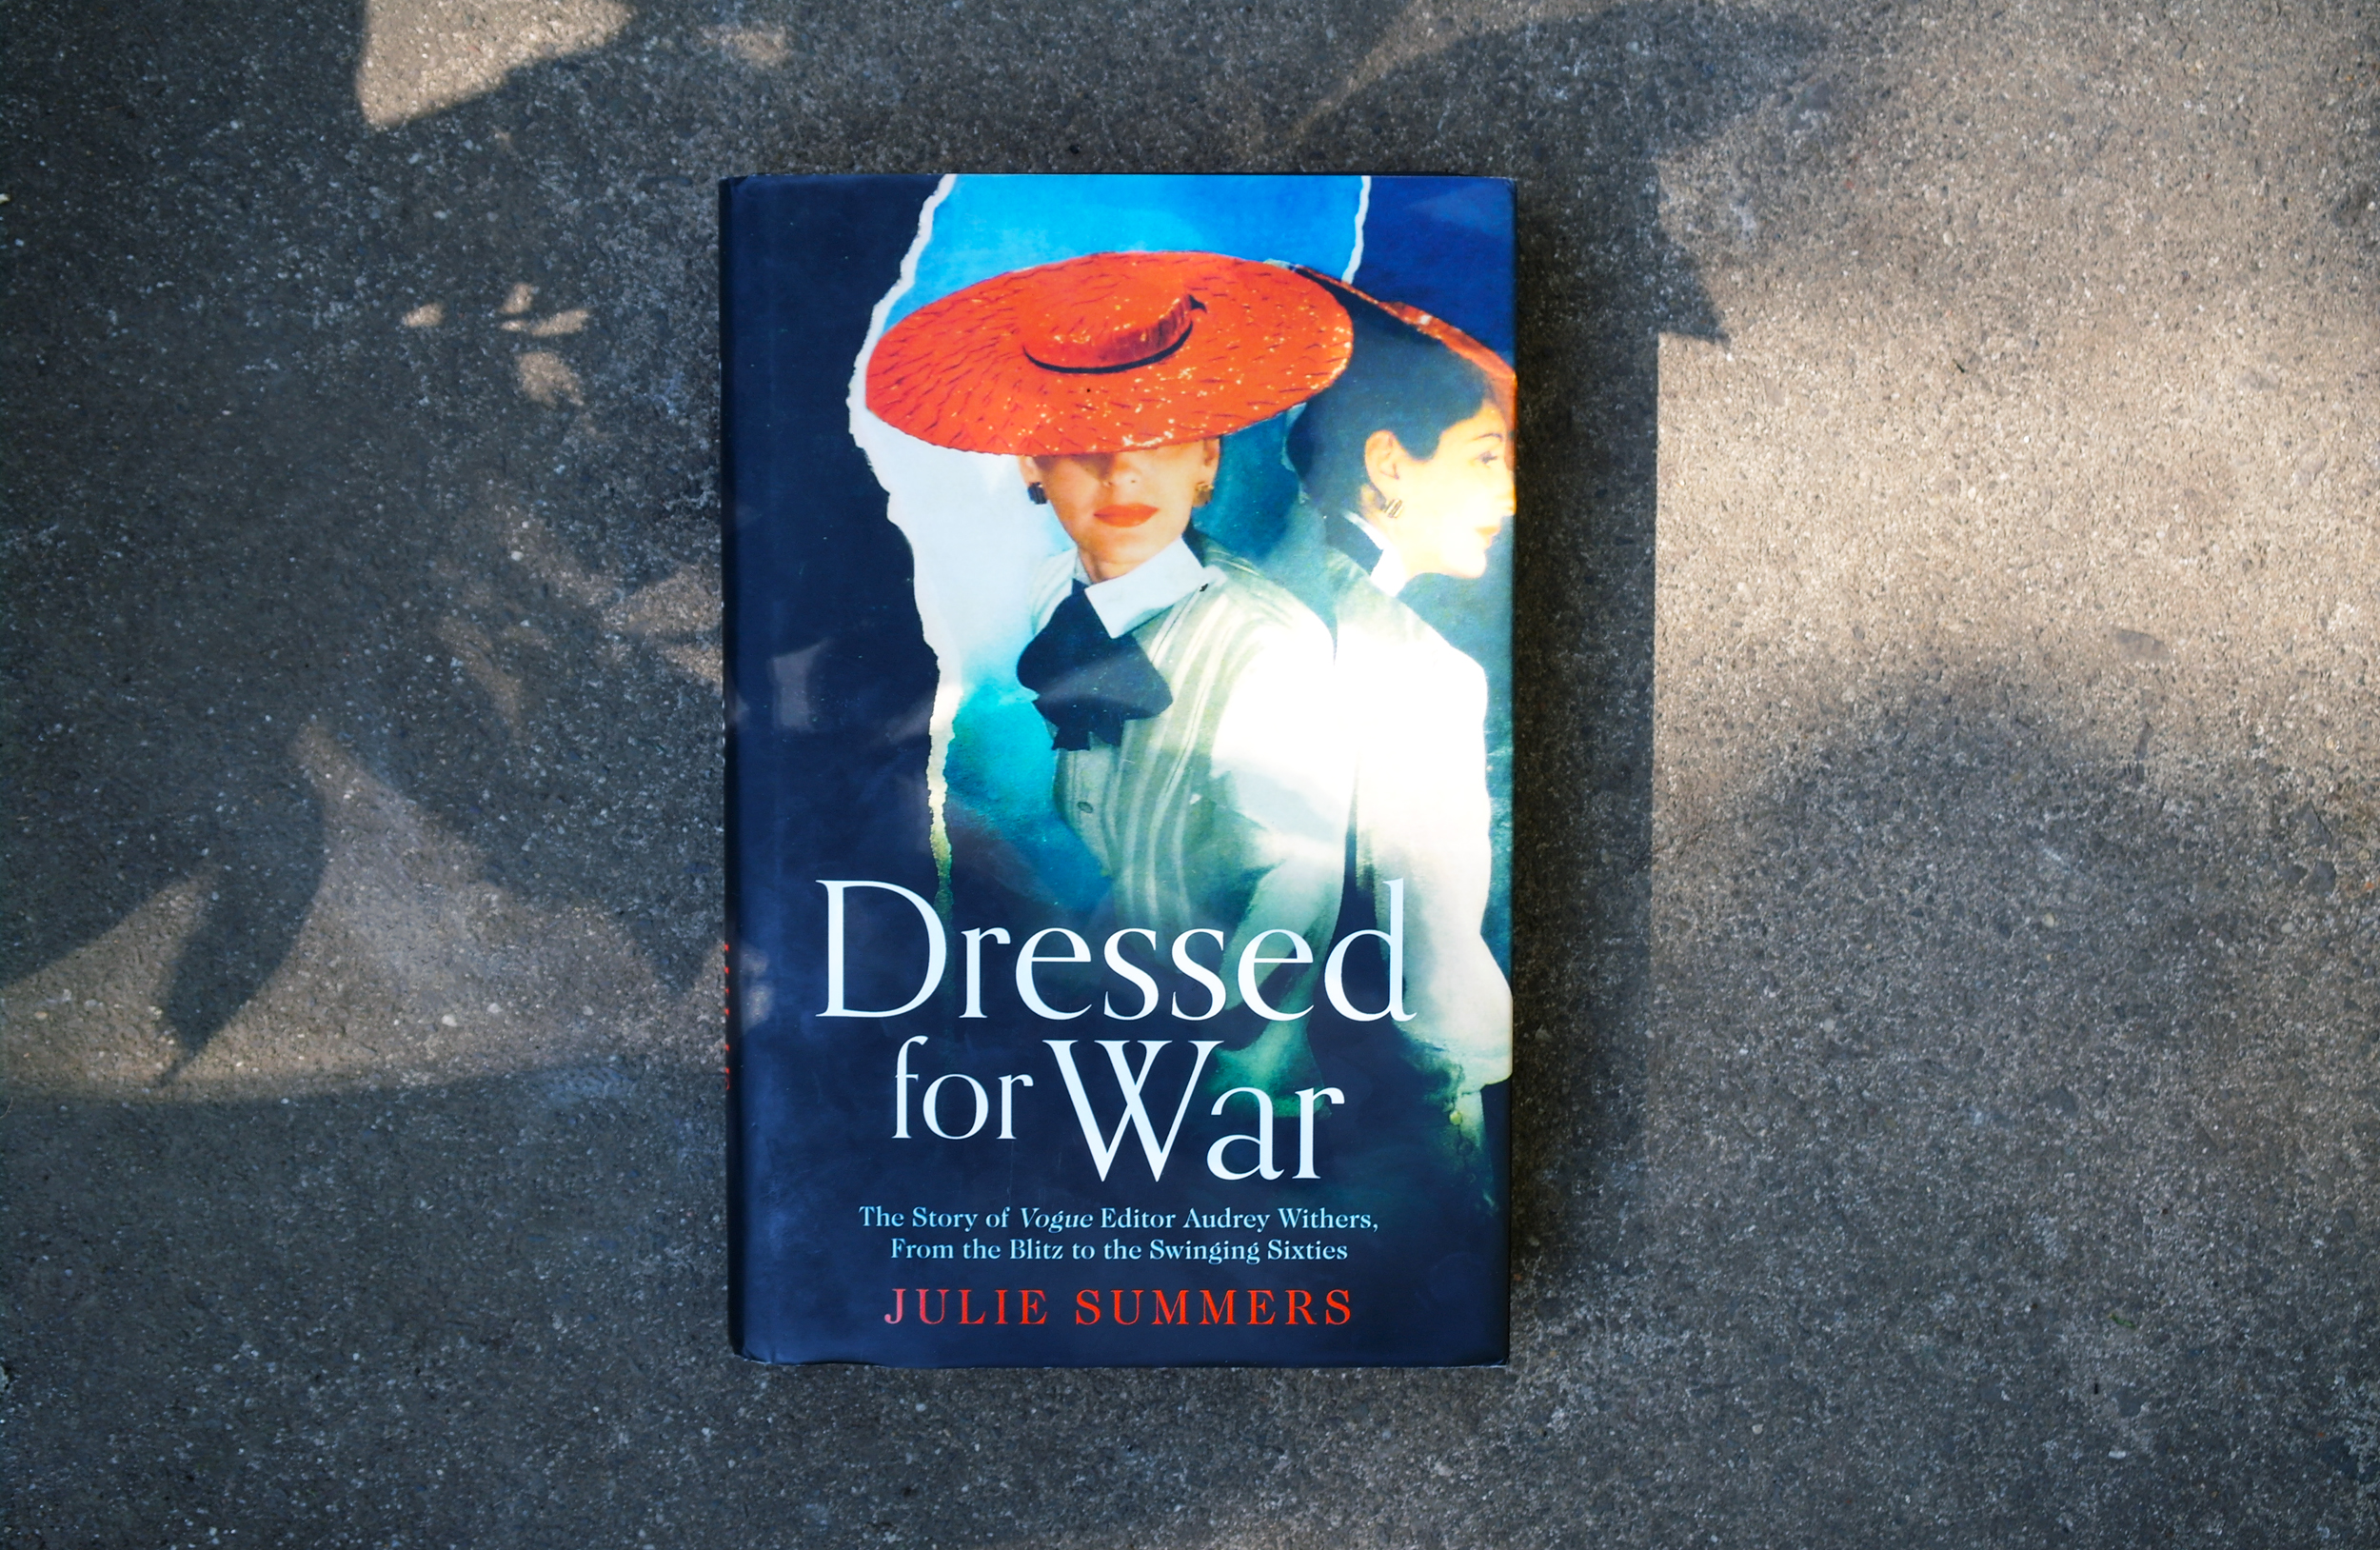 Dressed For War by Julie Summers